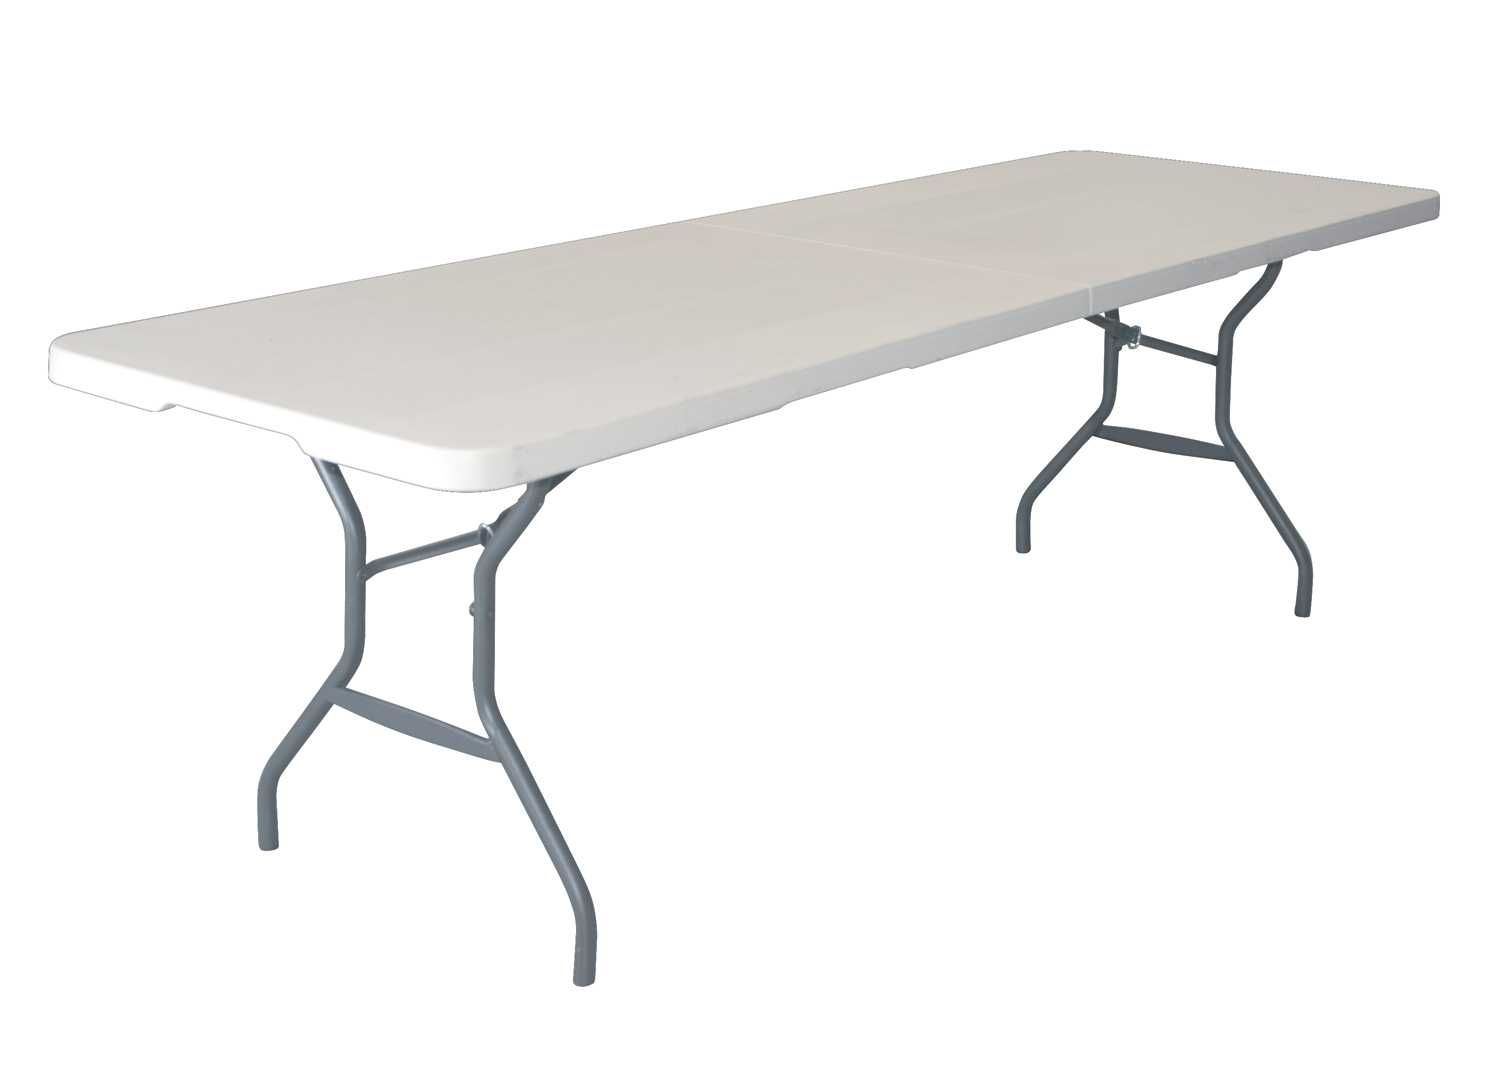 80169 Lifetime 8 Foot Light Commercial Fold In Half Table